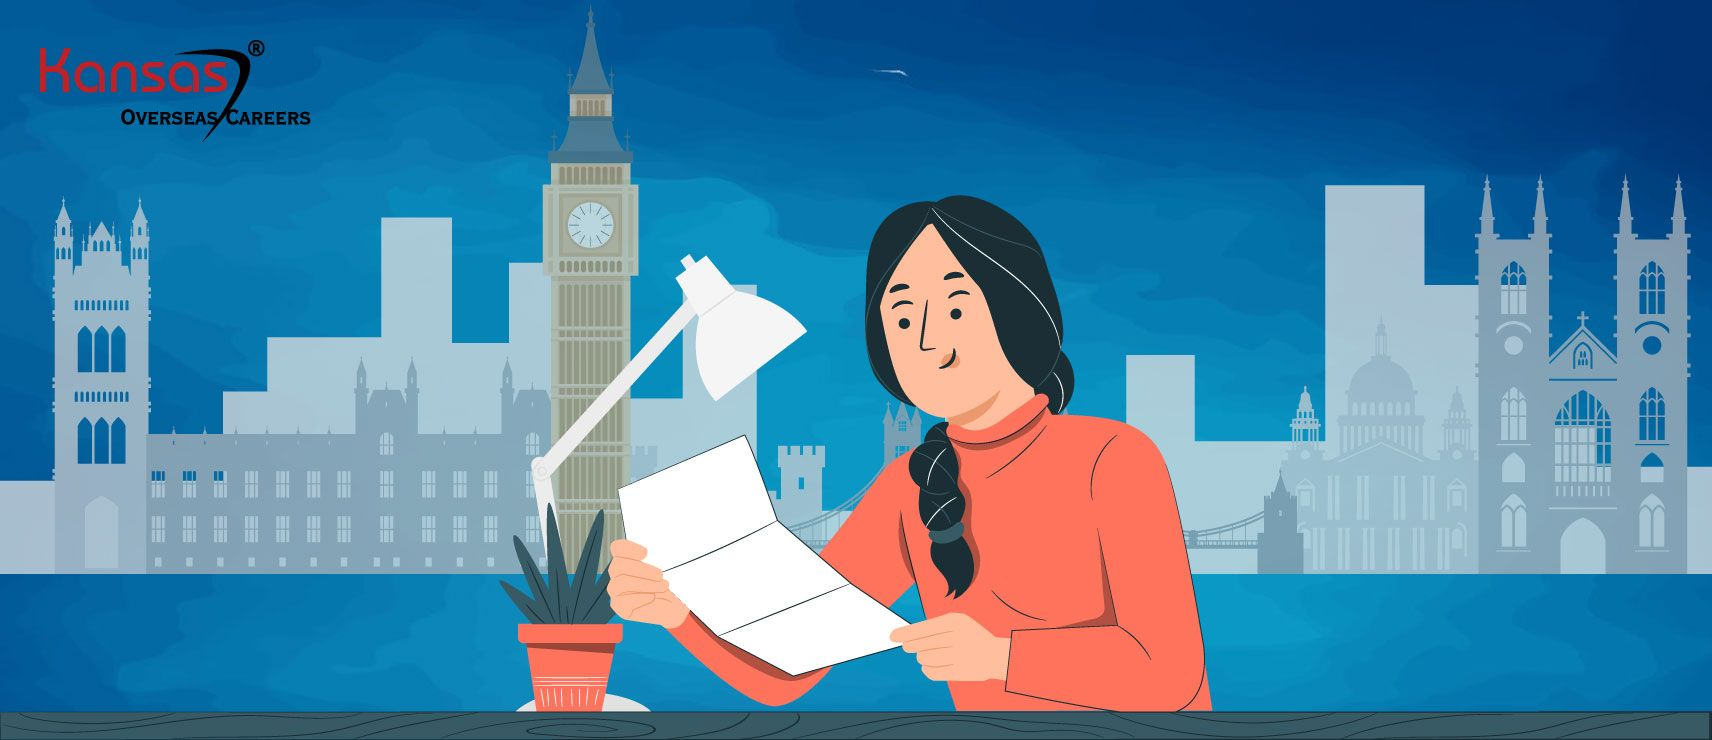 UK Study Visa Requirements in 2021 & New Rules